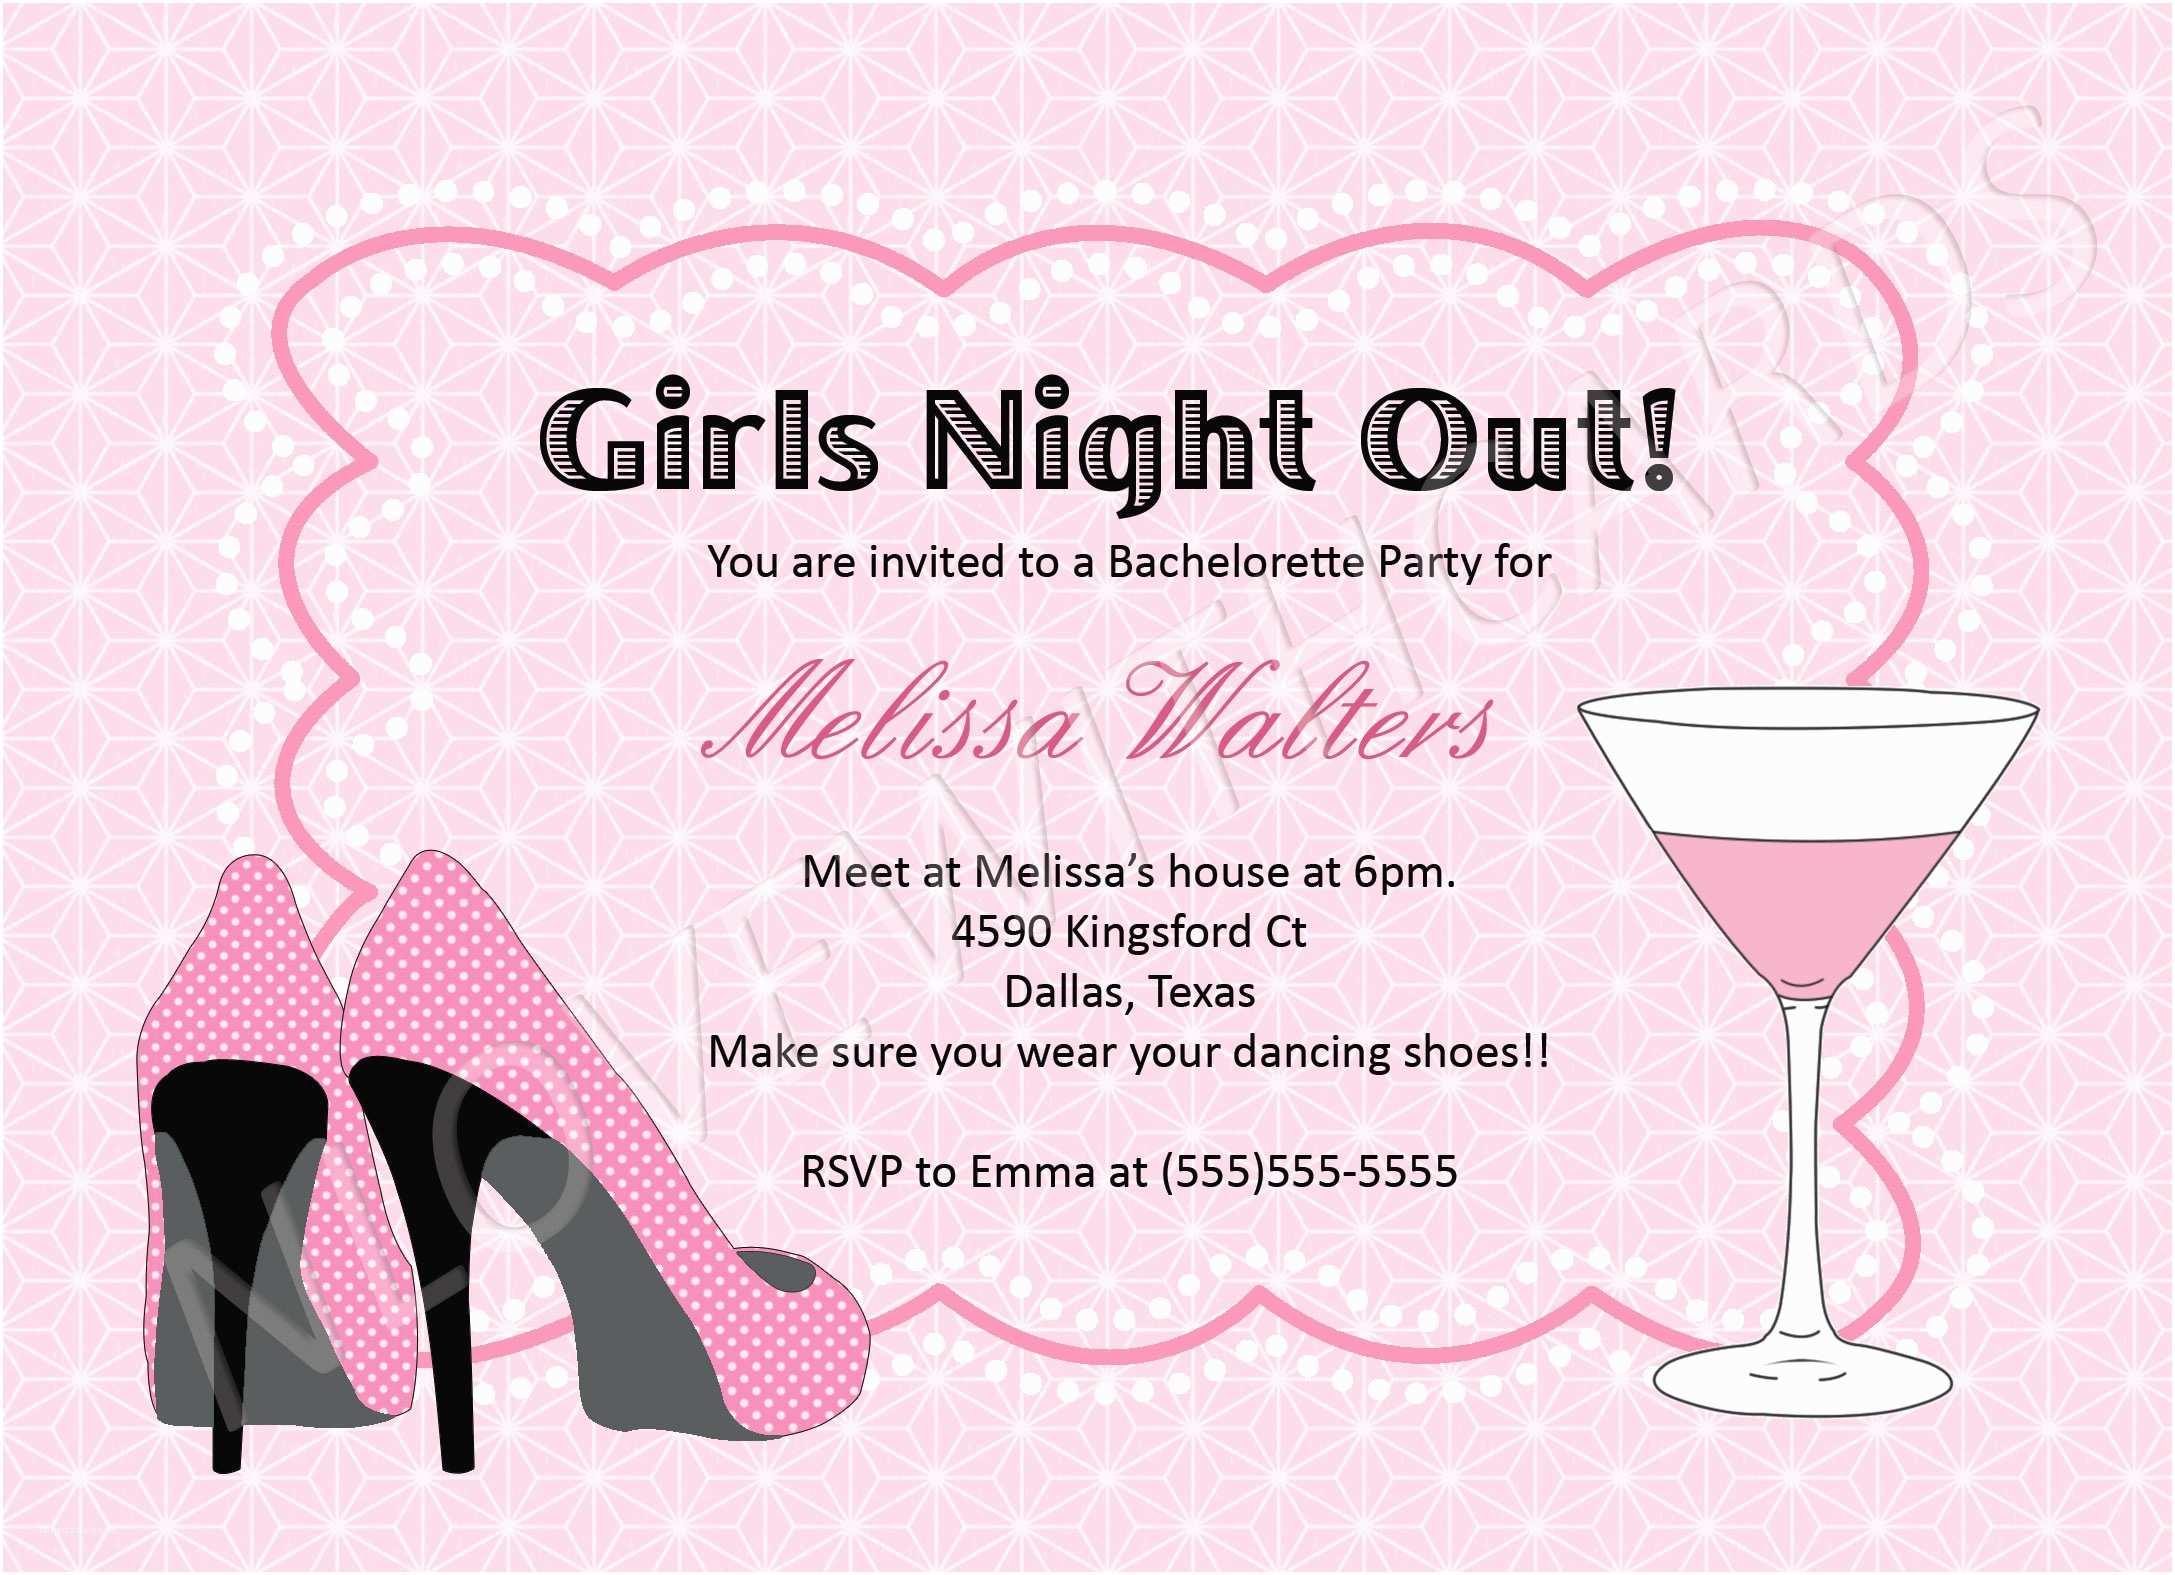 Bachelorette Party Invitations Party Invitations Bachelorette Party Invites Design